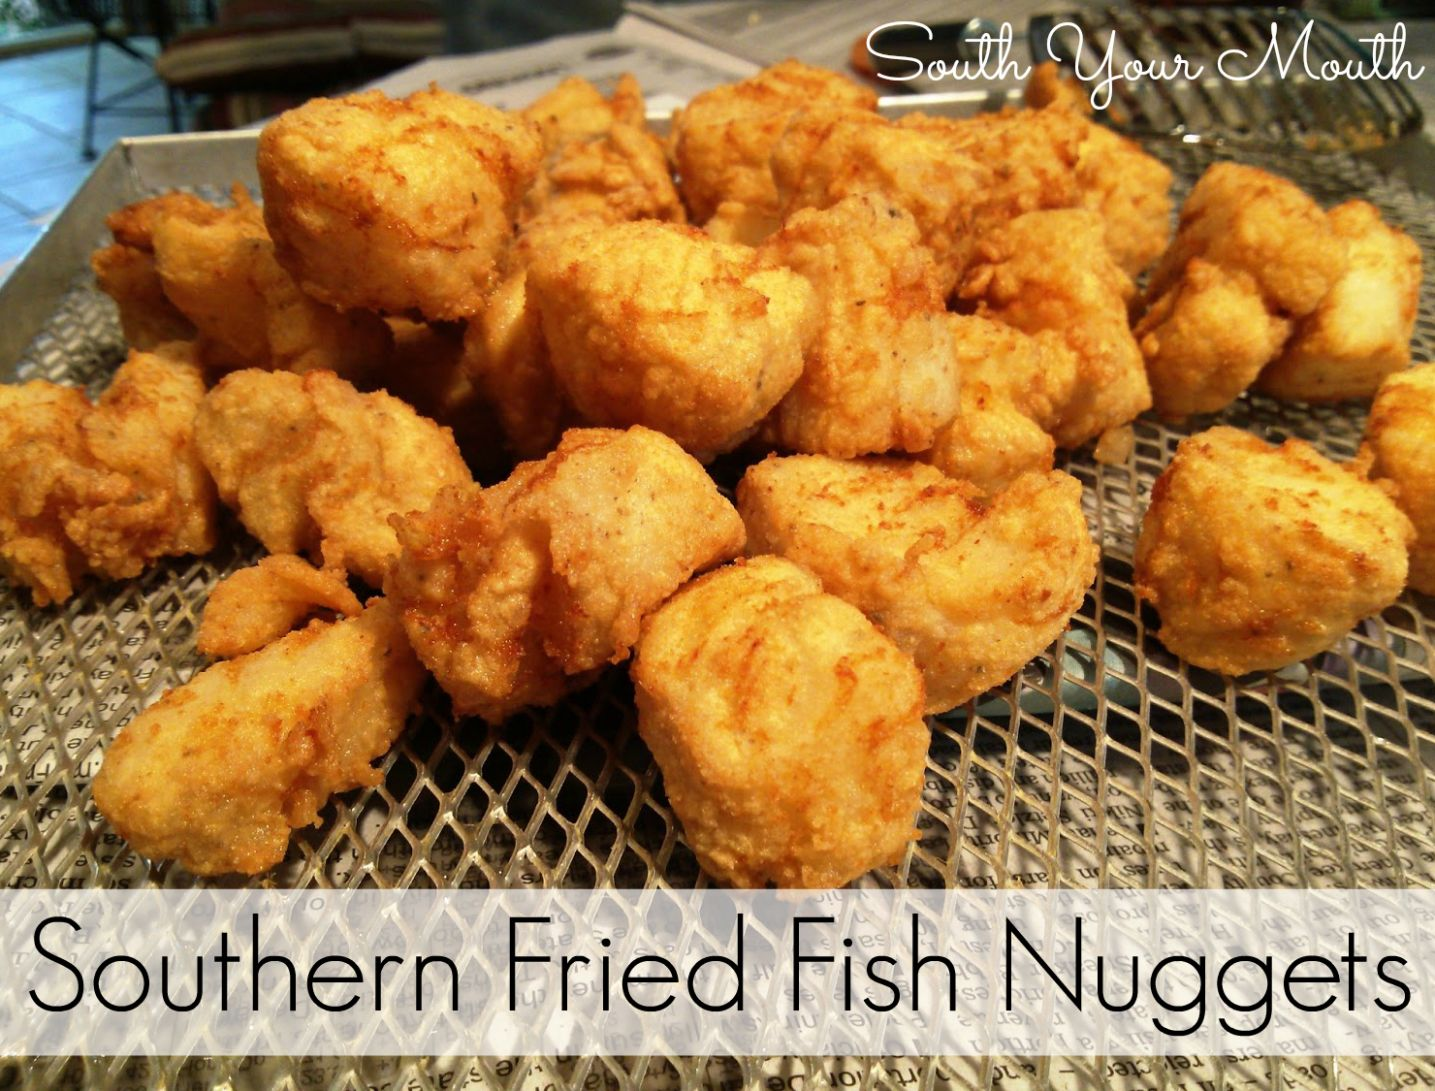 South Your Mouth: Southern Fried Fish Nuggets - Recipe Fish Nuggets